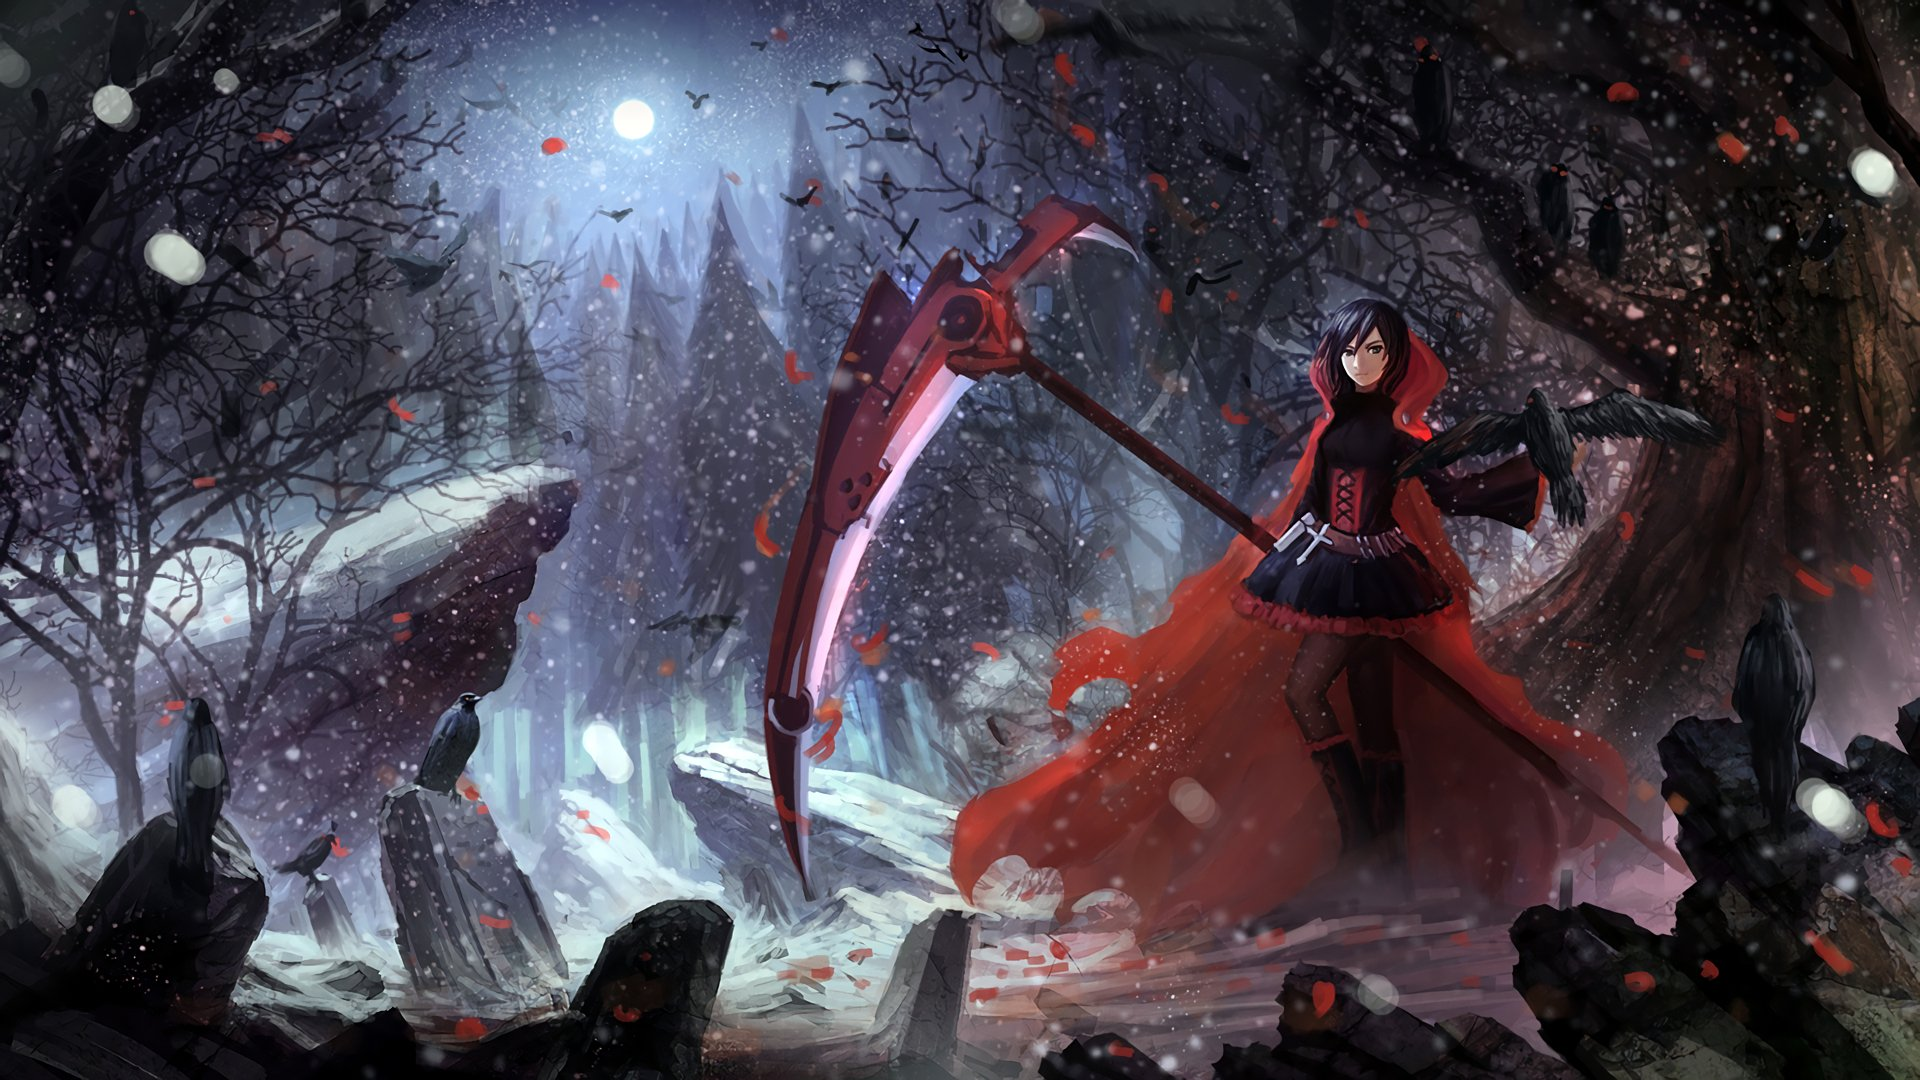 Anime - RWBY  Anime Red Ruby Rose (RWBY) Snow Dark Forest Night Raven Wallpaper